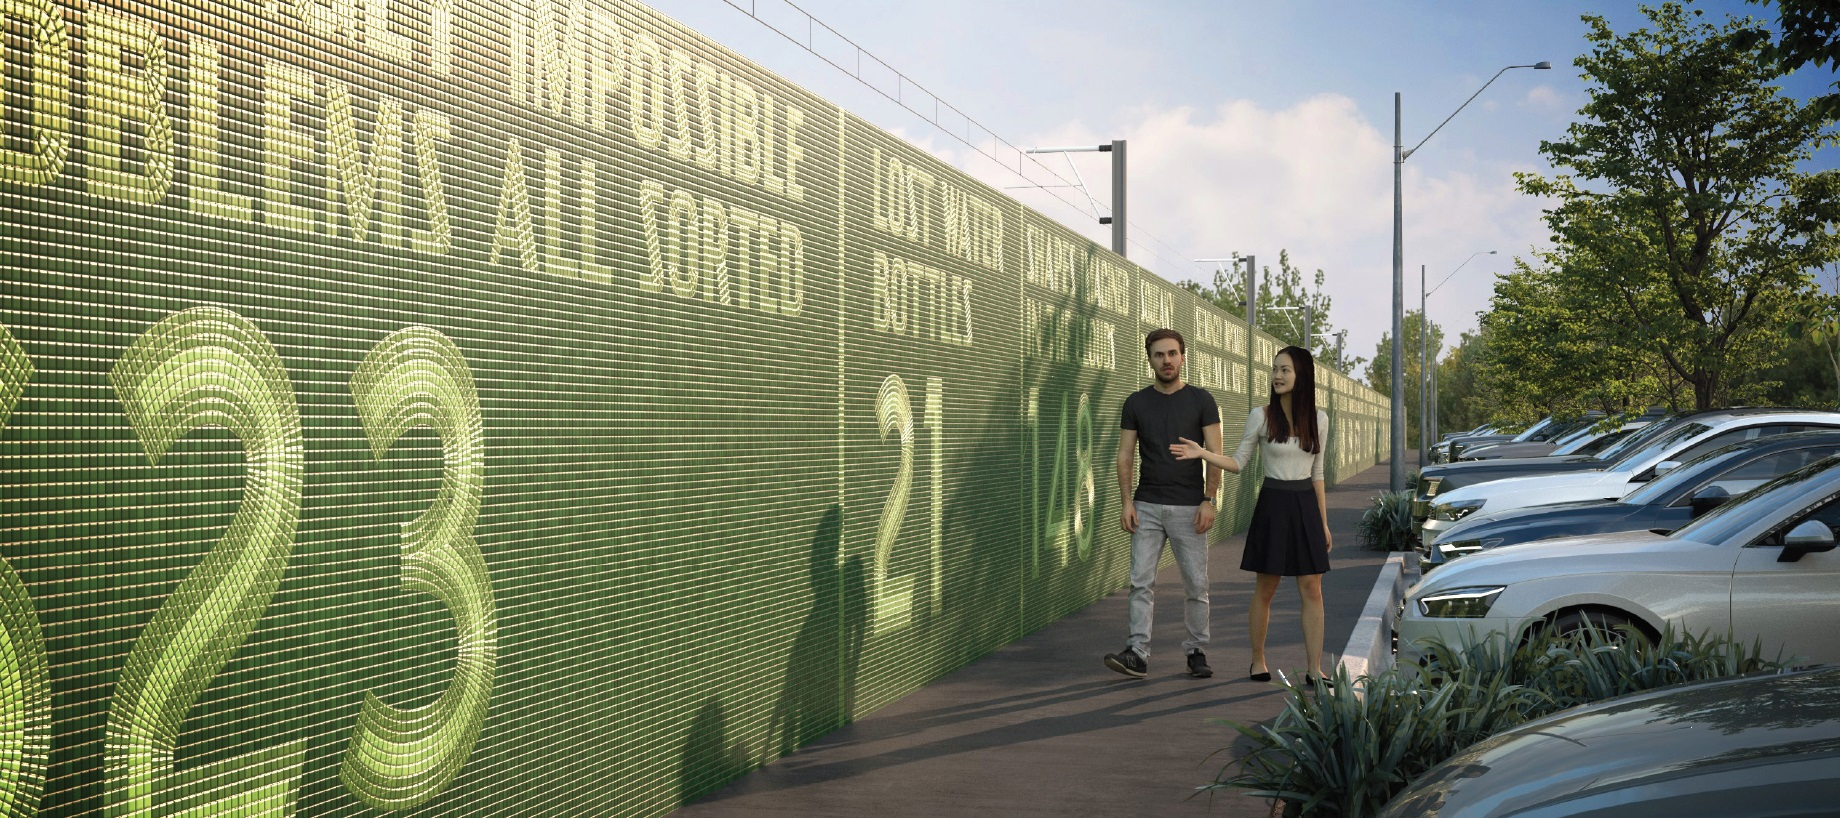 Render of an artwork made of green tiles with numbers and words, and people walking in front